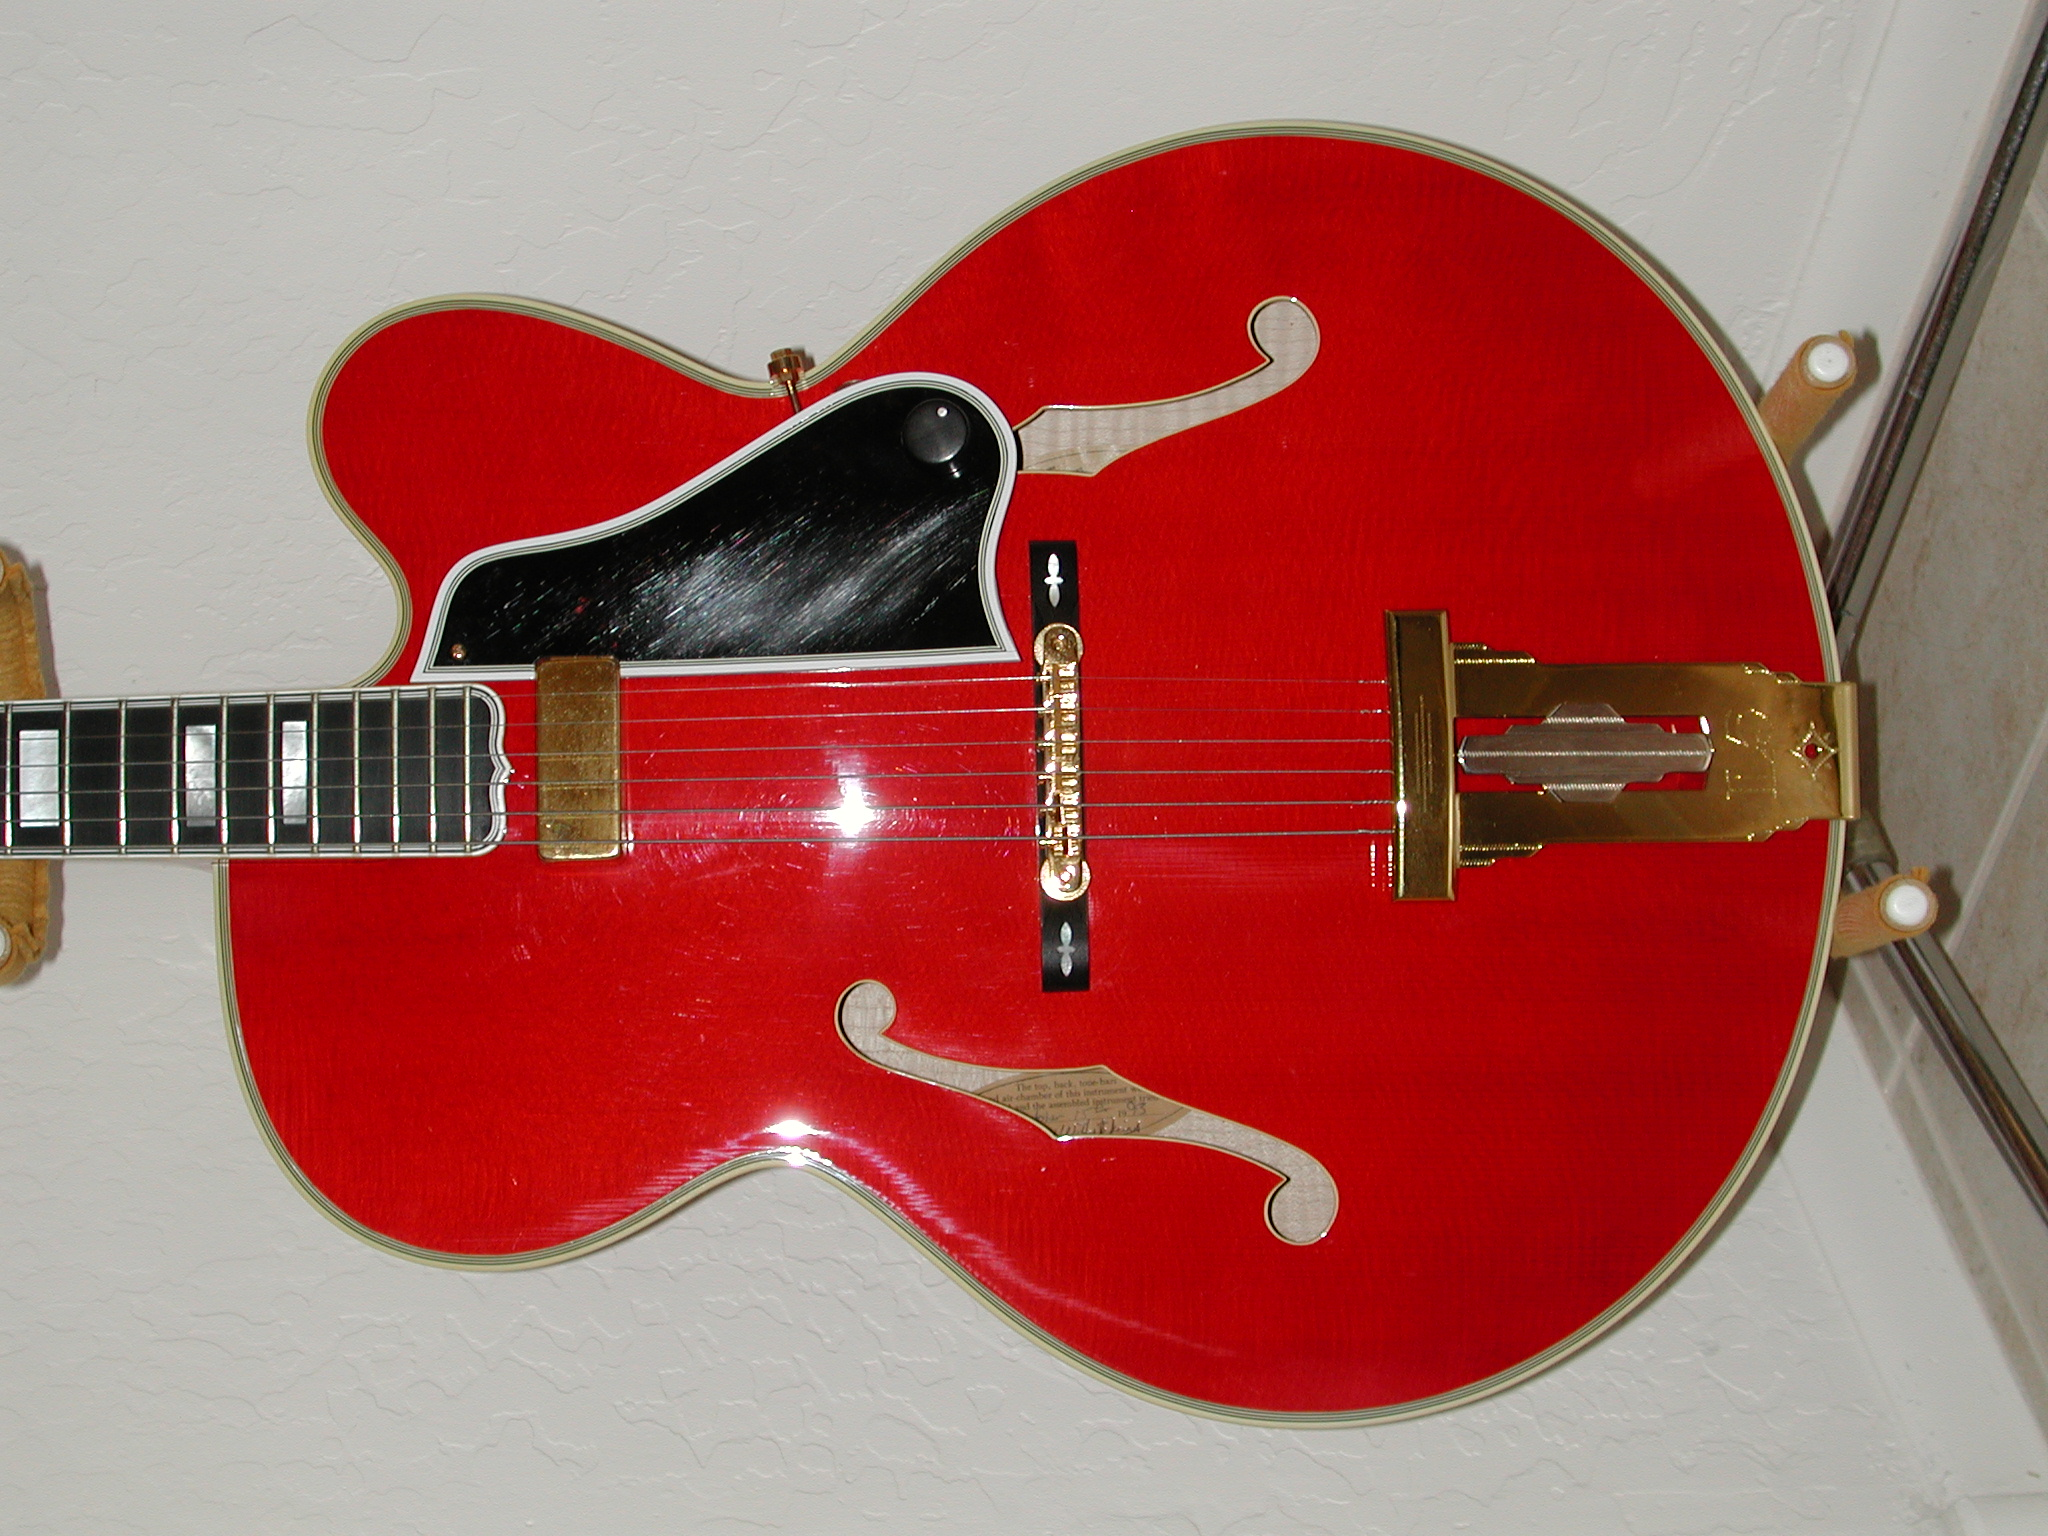 Your Gibson L-5 Choice-dscn3131-jpg